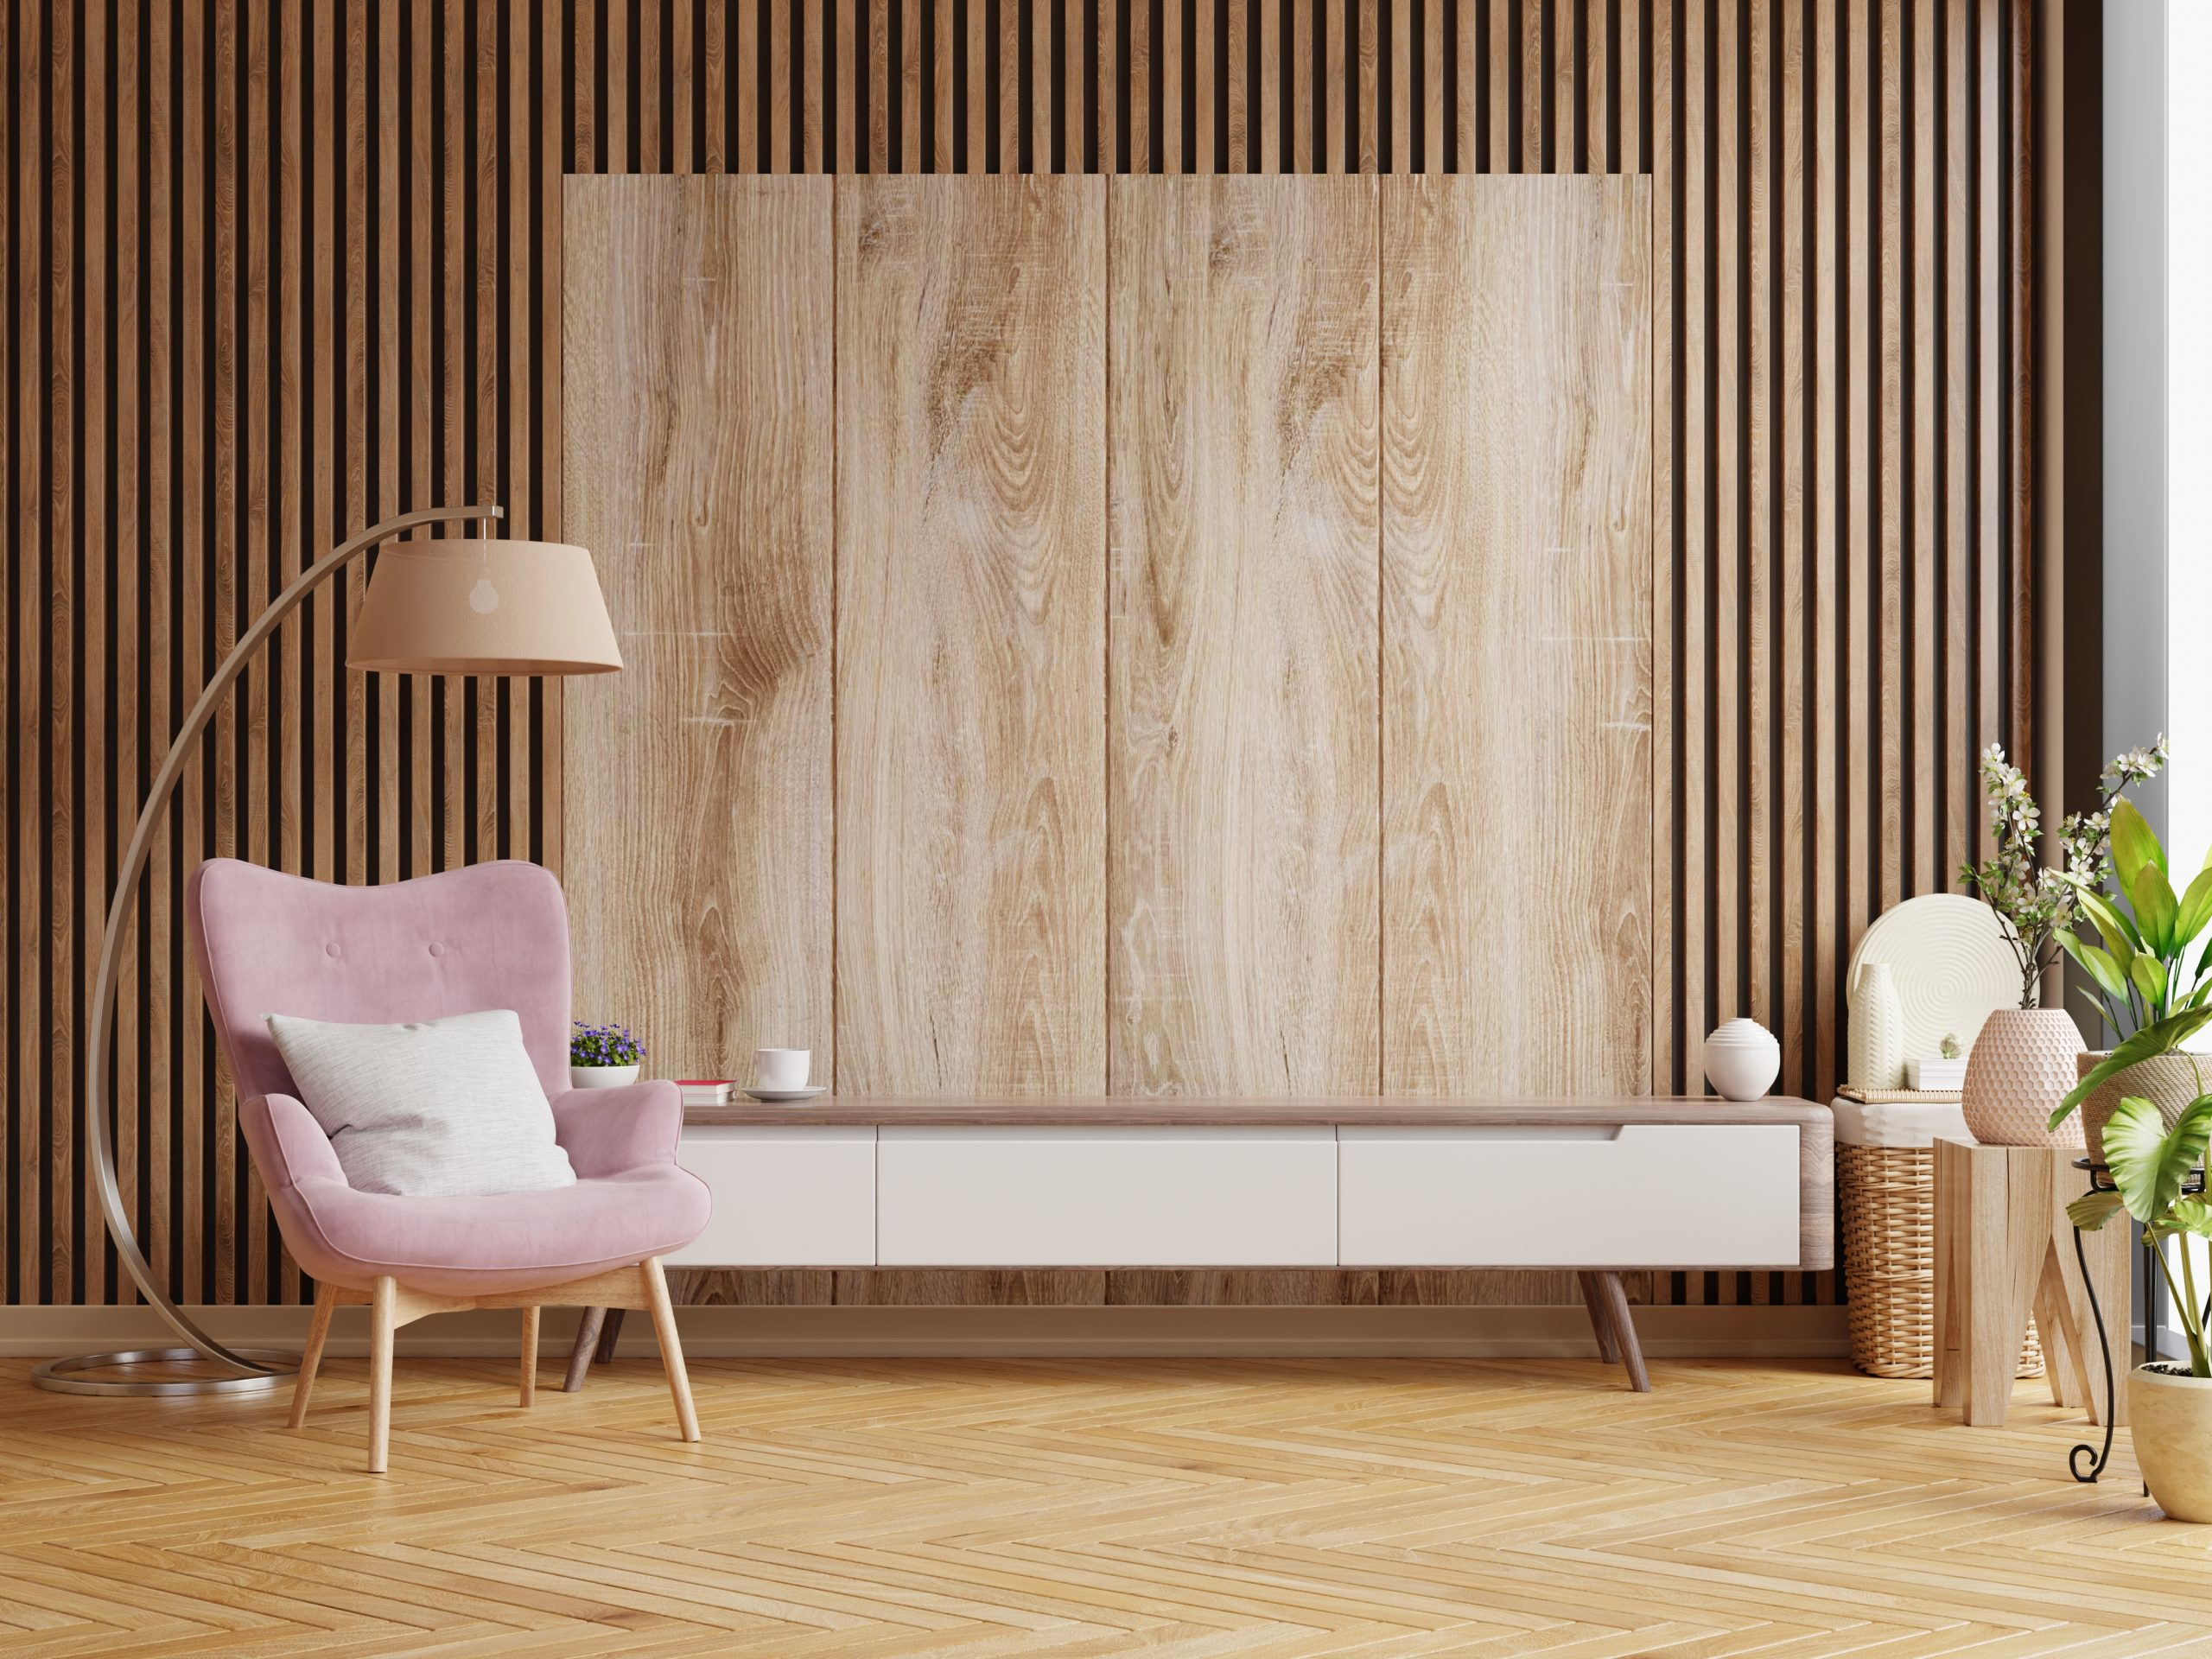 Cabinet designs for living room on wooden wall background,3d rendering